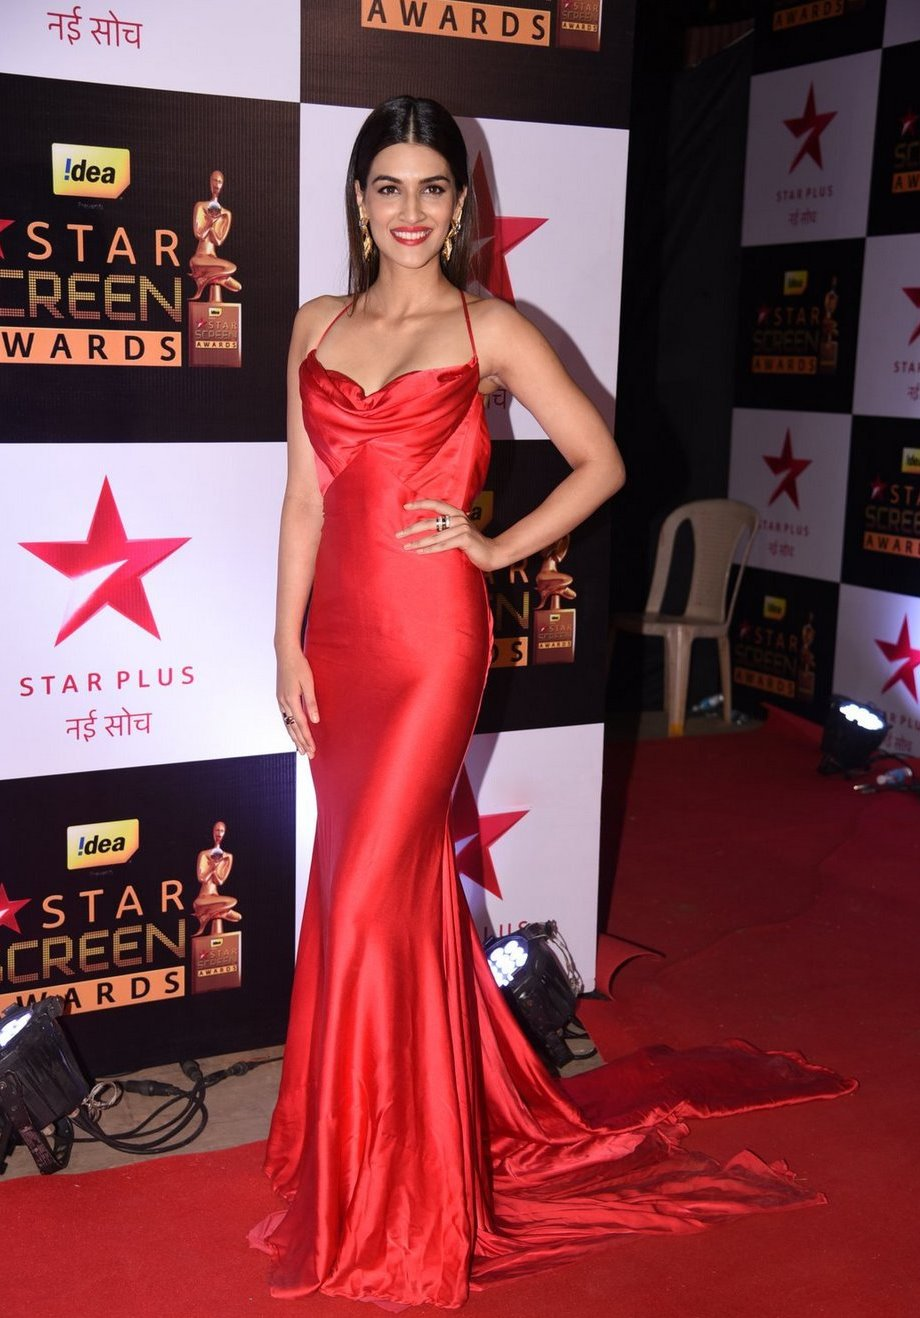 Model Kriti Sanon Smiling Face Photos In Red Dress